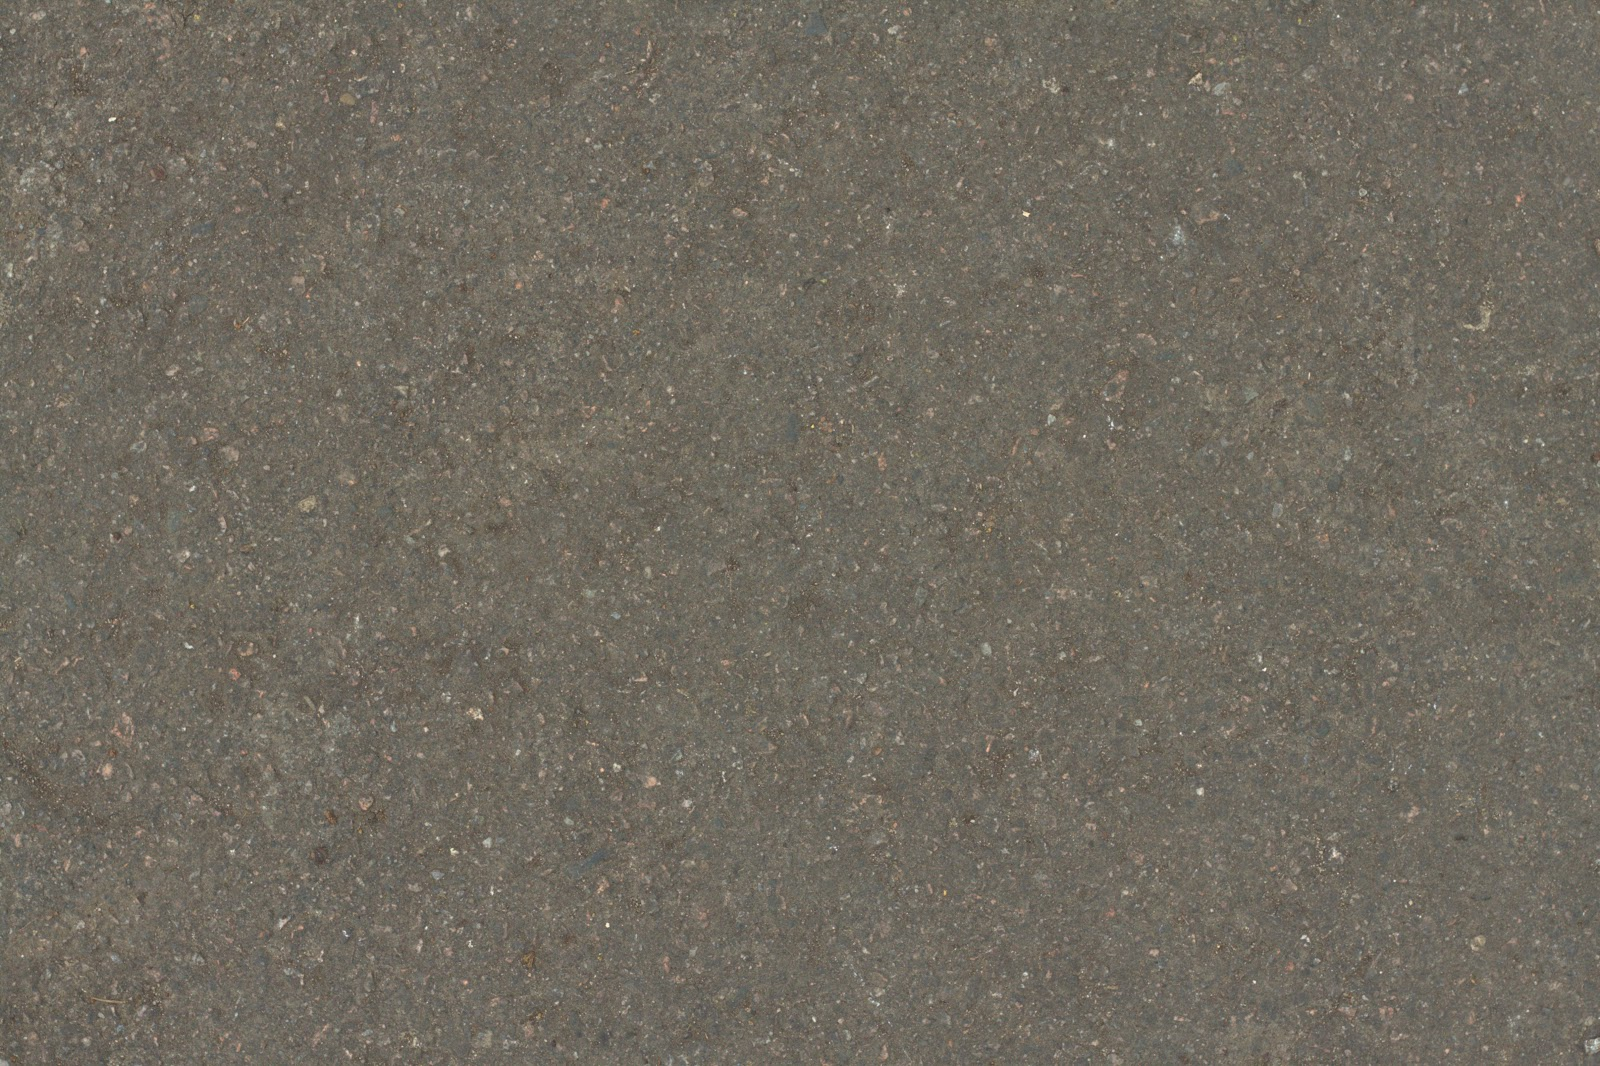 Dirt ground floor feb_2015 texture 4770x3178